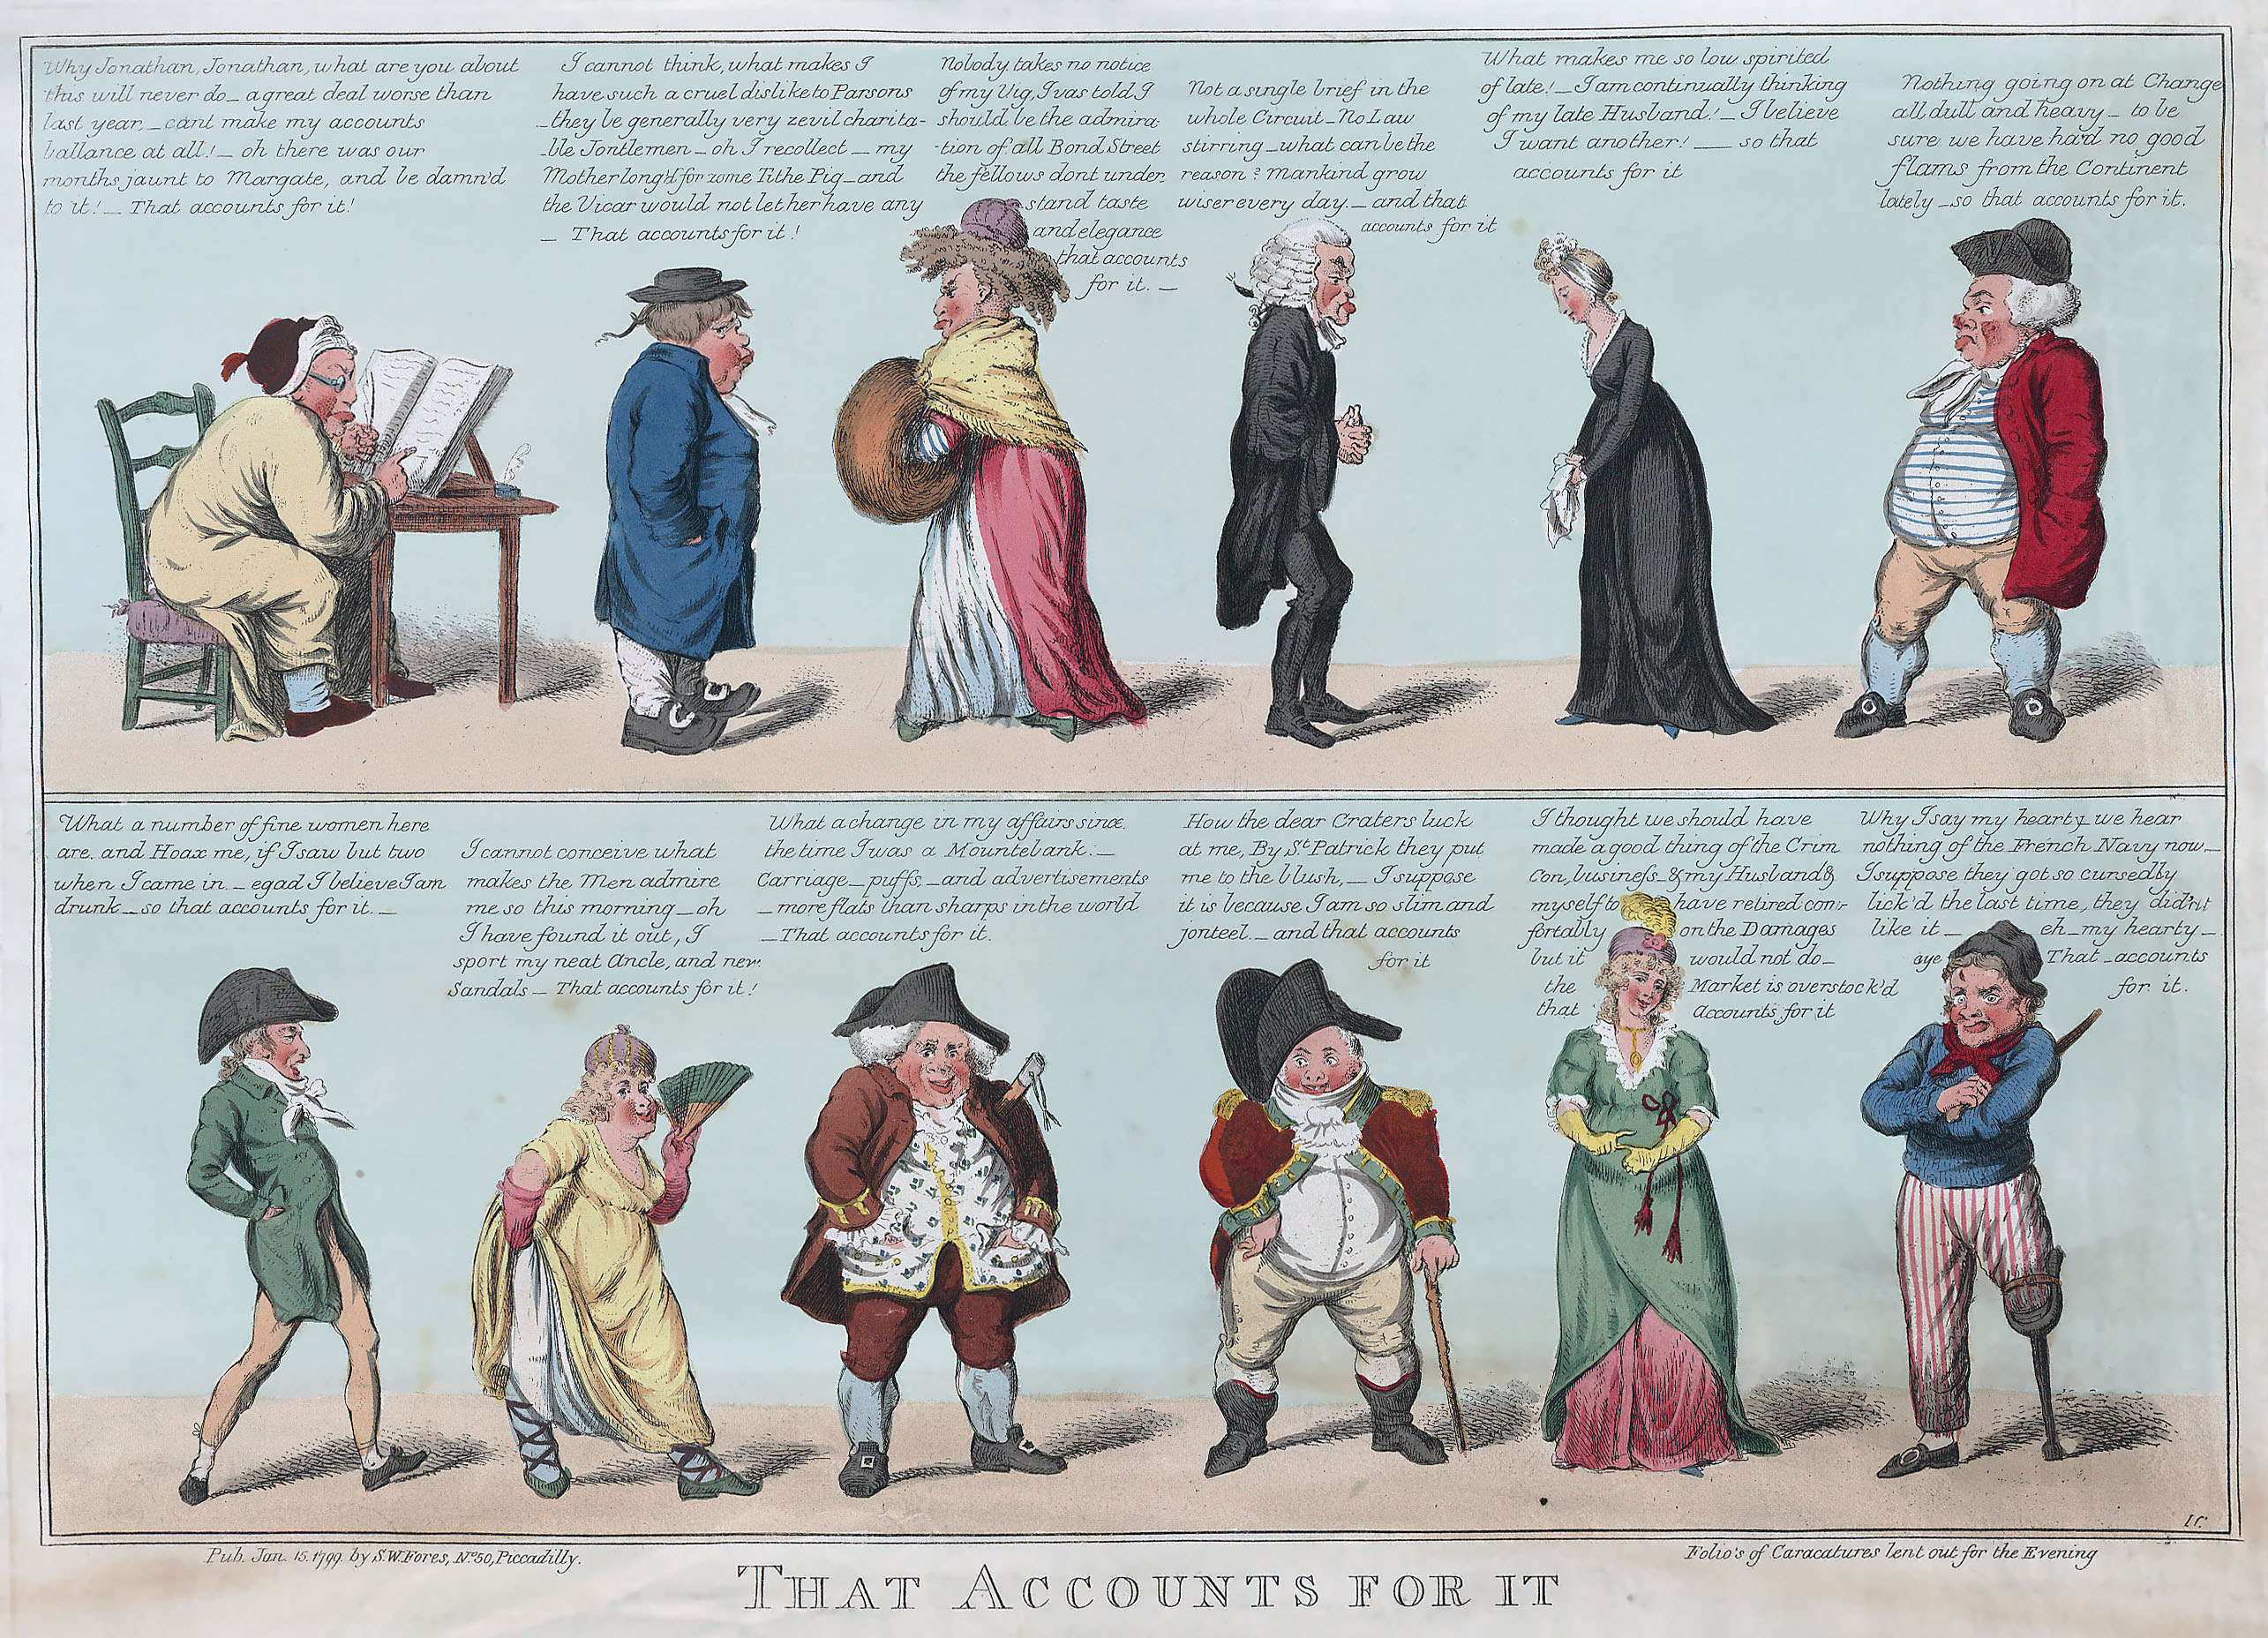 File:That-accounts-for-it-1799-caricature-Isaac-